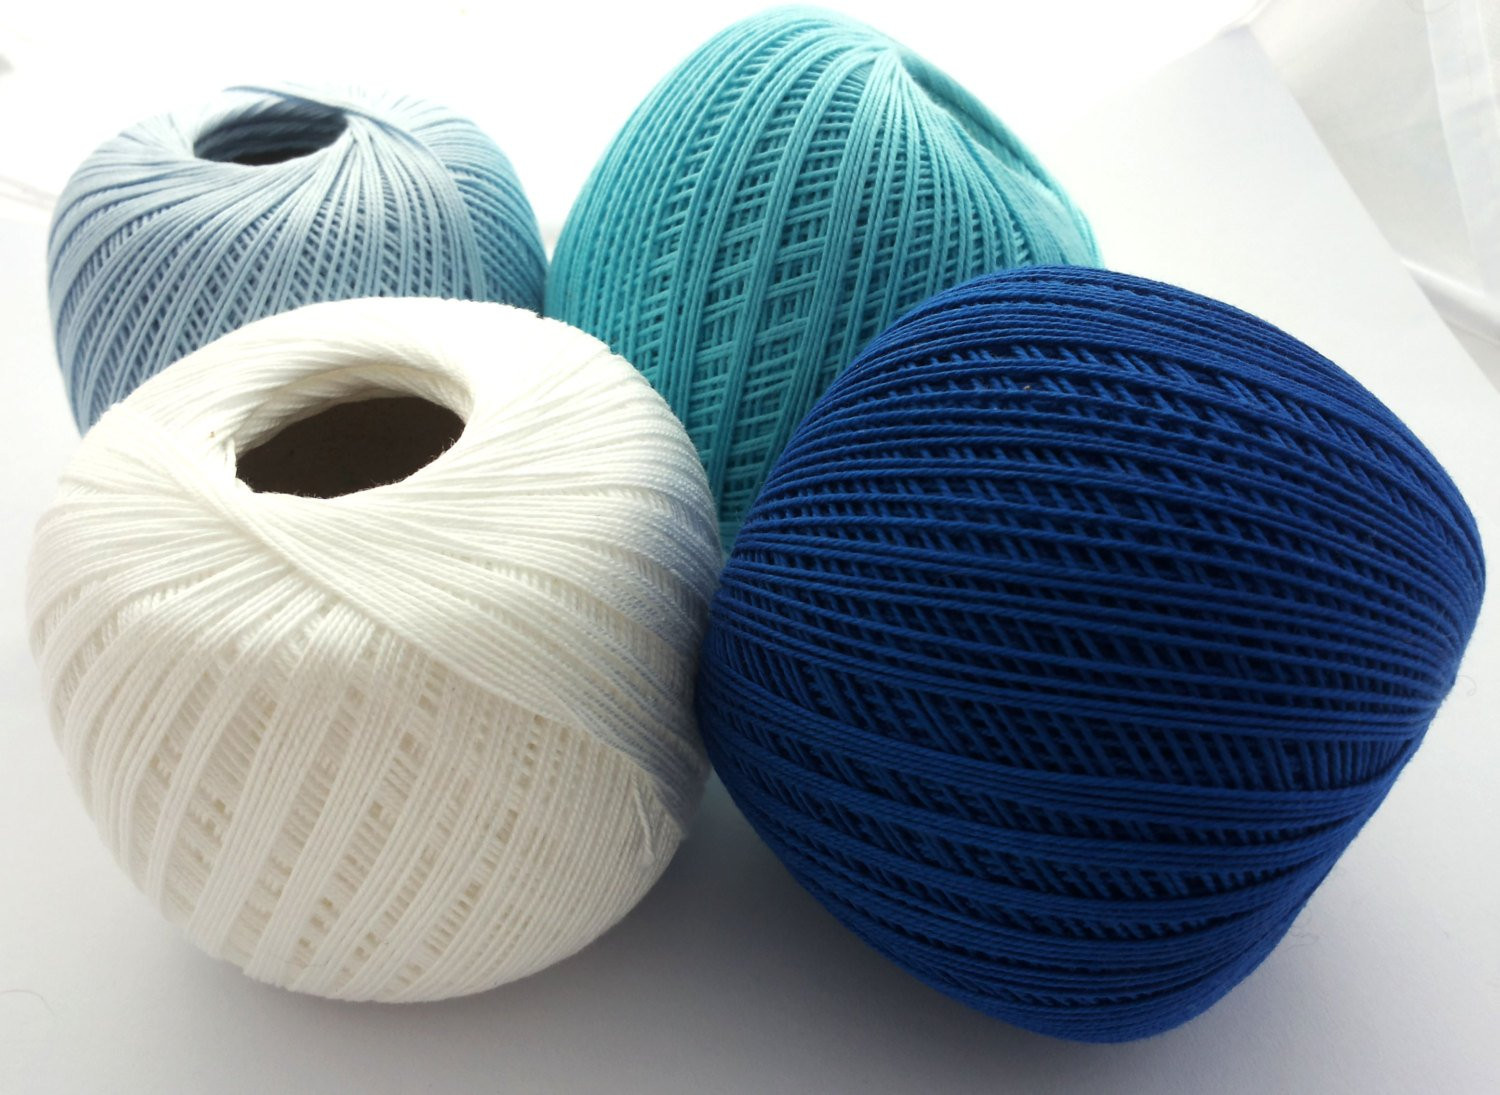 4 Ply Cotton Yarn Unique 4 X Crochet Cotton Yarn 10 Size 10 Thread 3 Ply Cotton Of Lovely 43 Photos 4 Ply Cotton Yarn